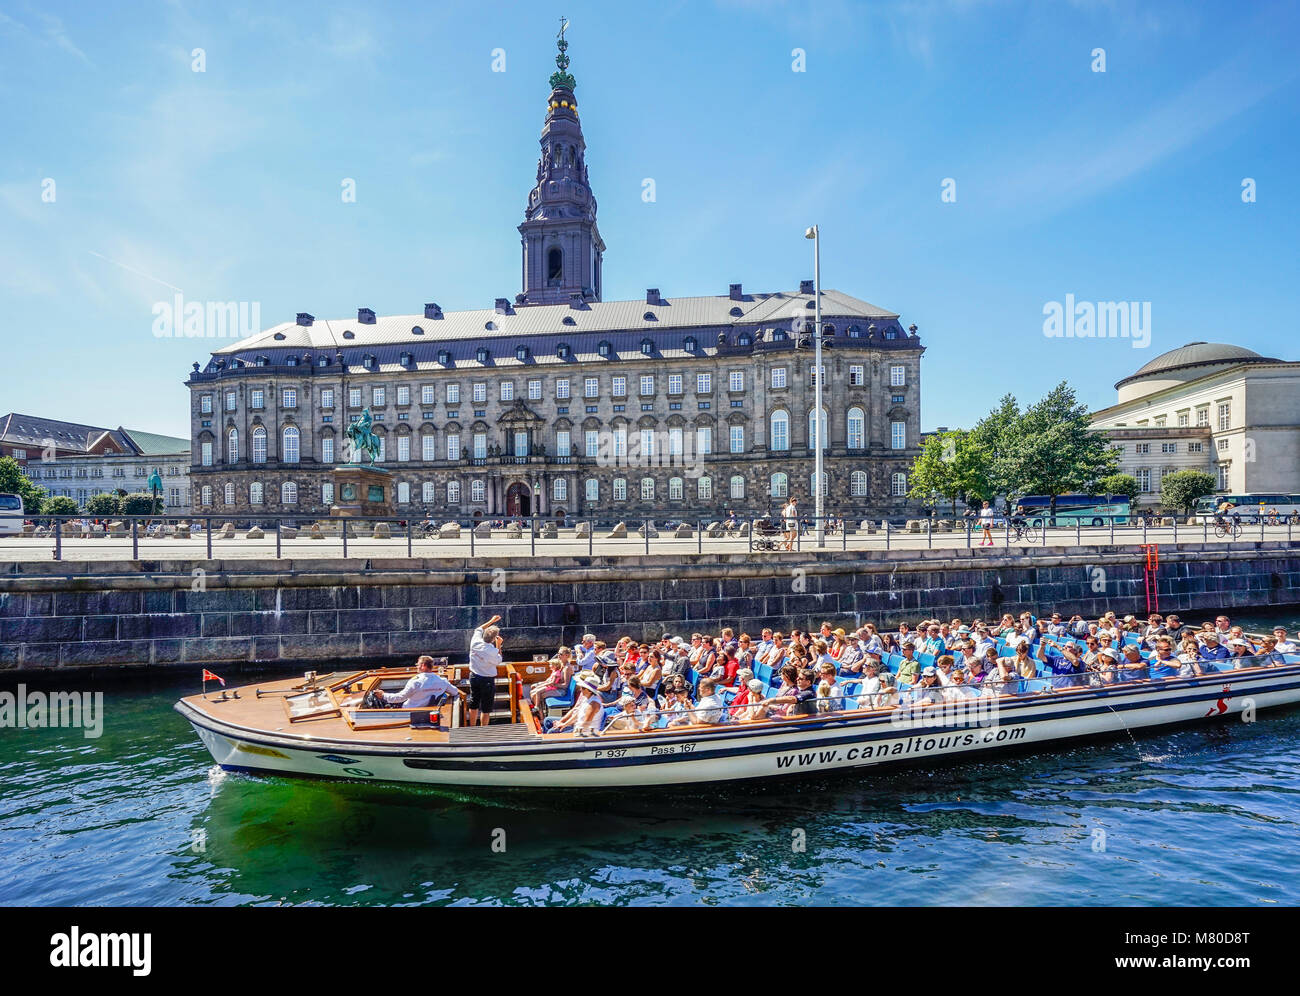 Denmark, Zealand, Copenhagen, tour boat on Slotholmens Kanal passing  Christianborg Palace, seat of the Folketinget, - Stock Image